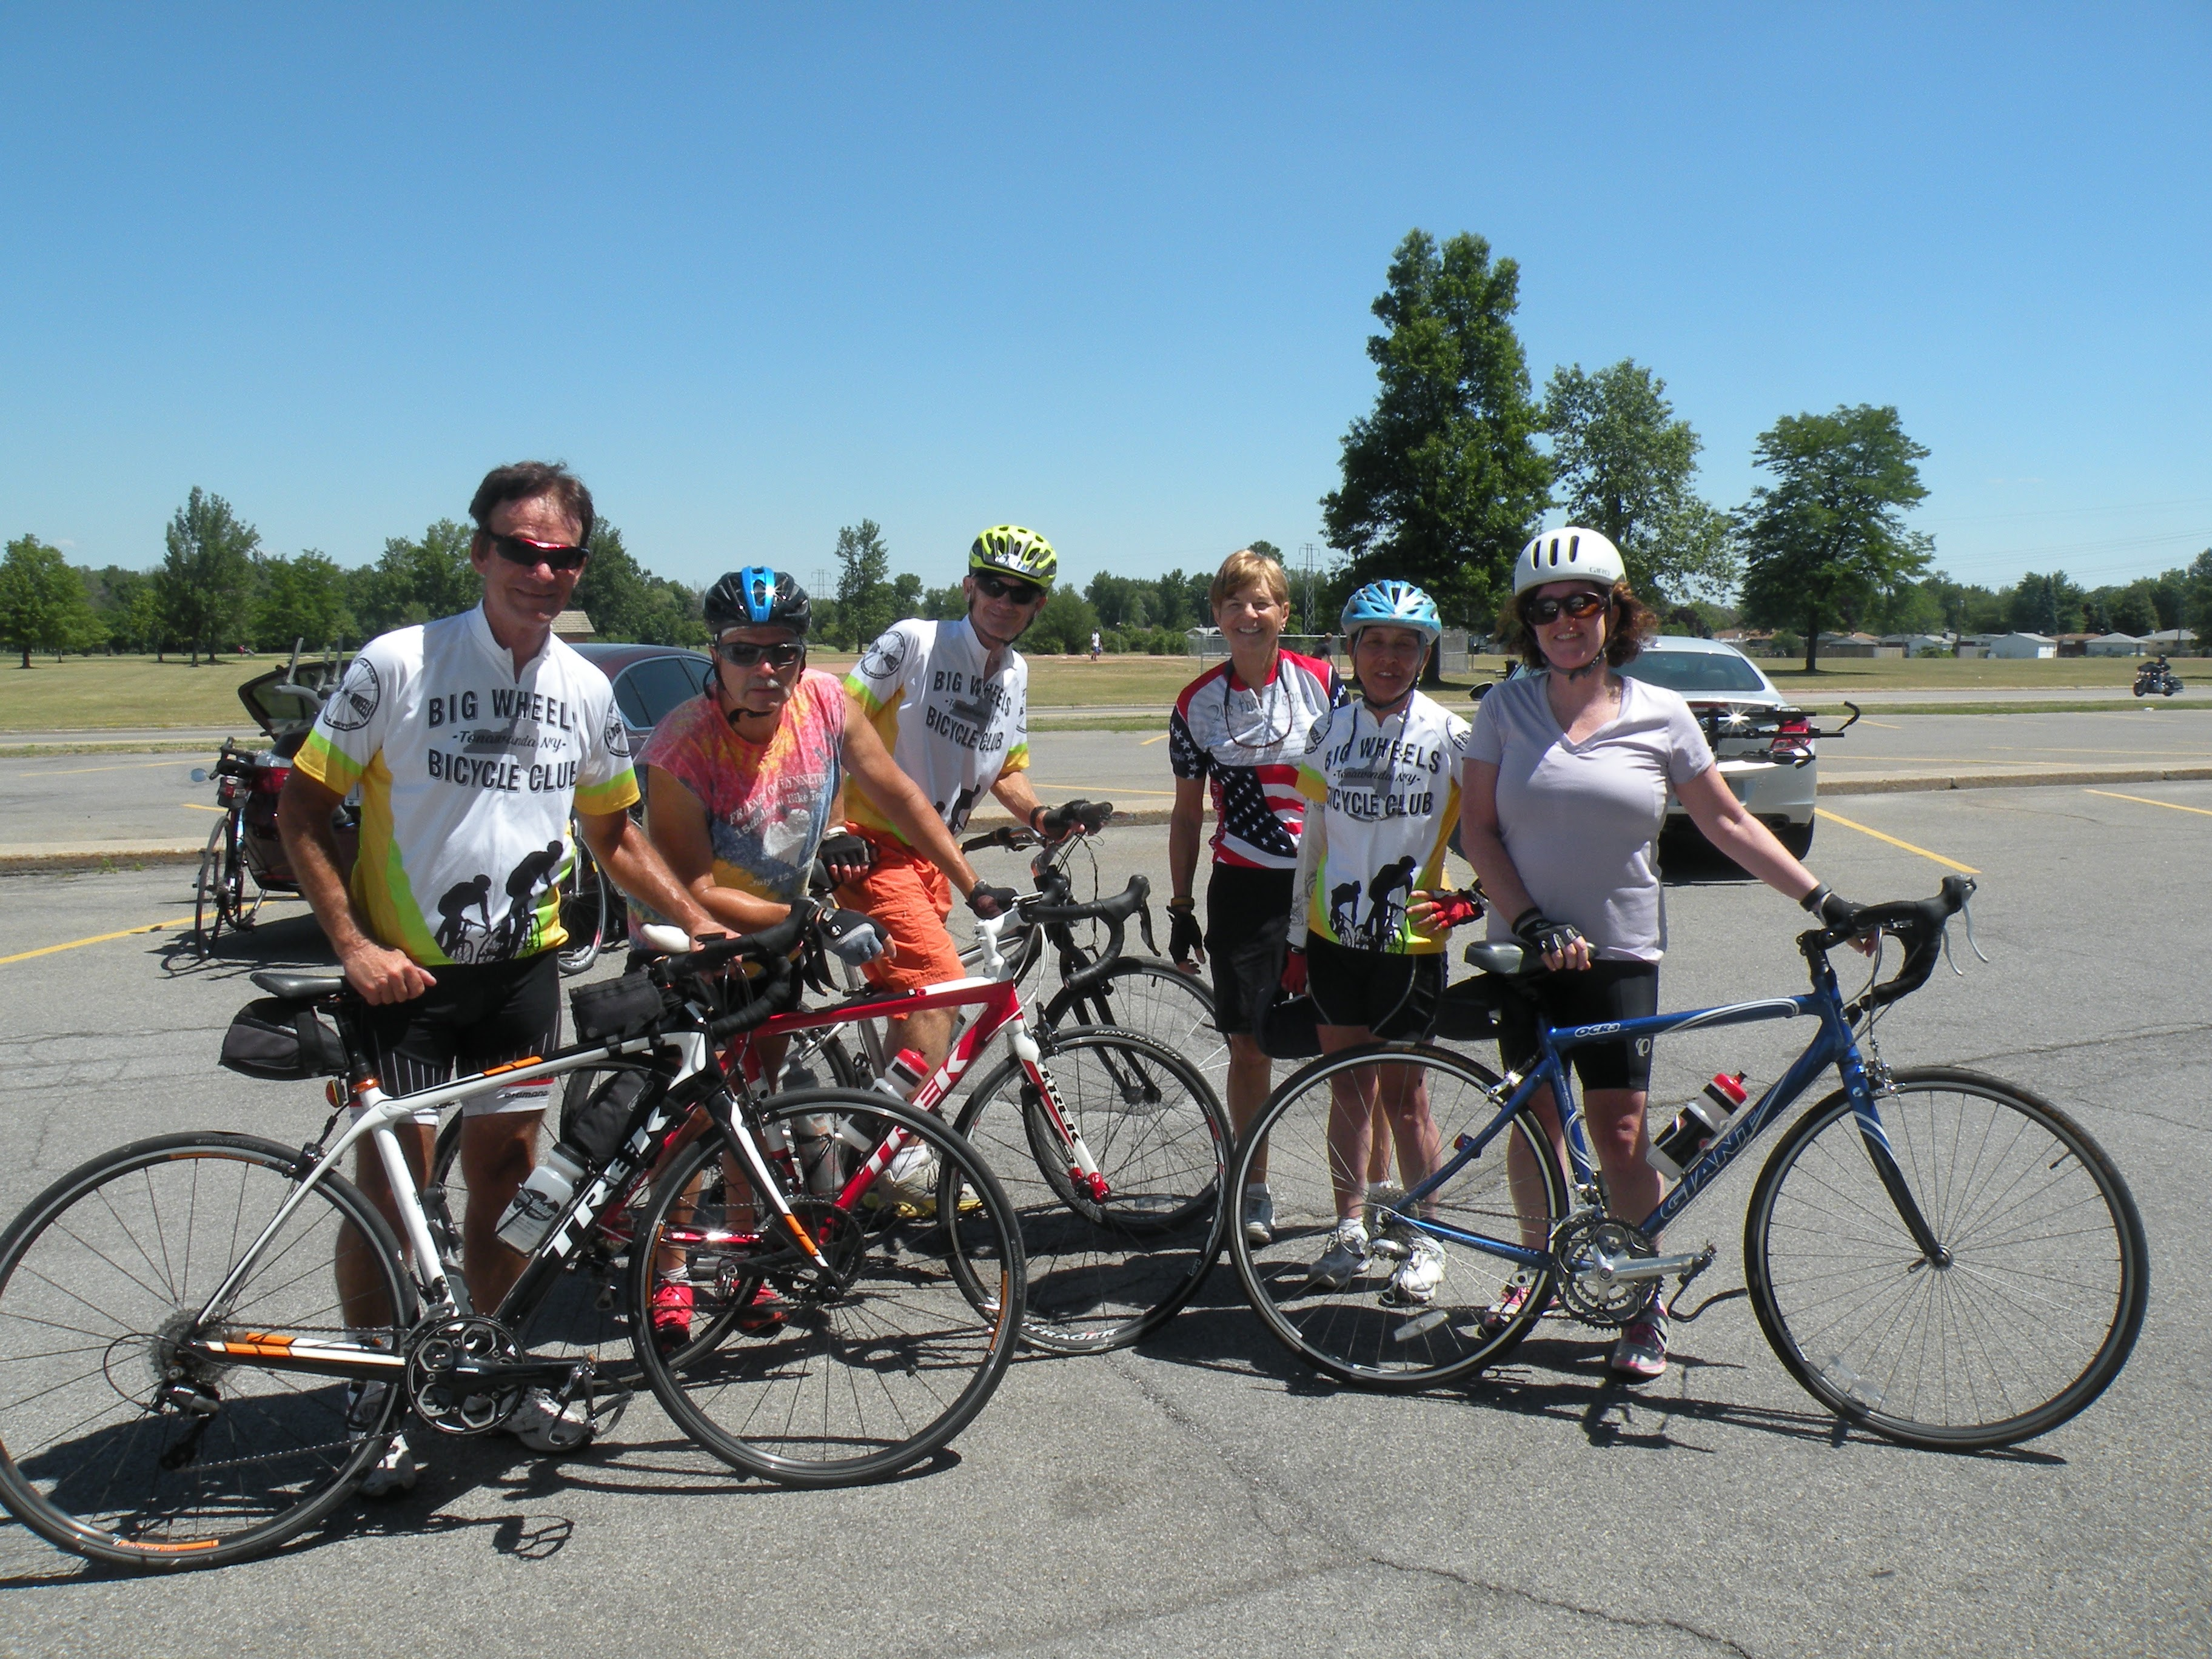 From left, Big Wheel Bicycle Club members Jack Muscarella, Don Simon, Tom Somerville,  Nancy Holzerland, Kathleen DiGiore and  Cathleen Waters stop for a photo during a club ride last year. The club will host its annual open house on Saturday. (Photo by Paula Manijak)